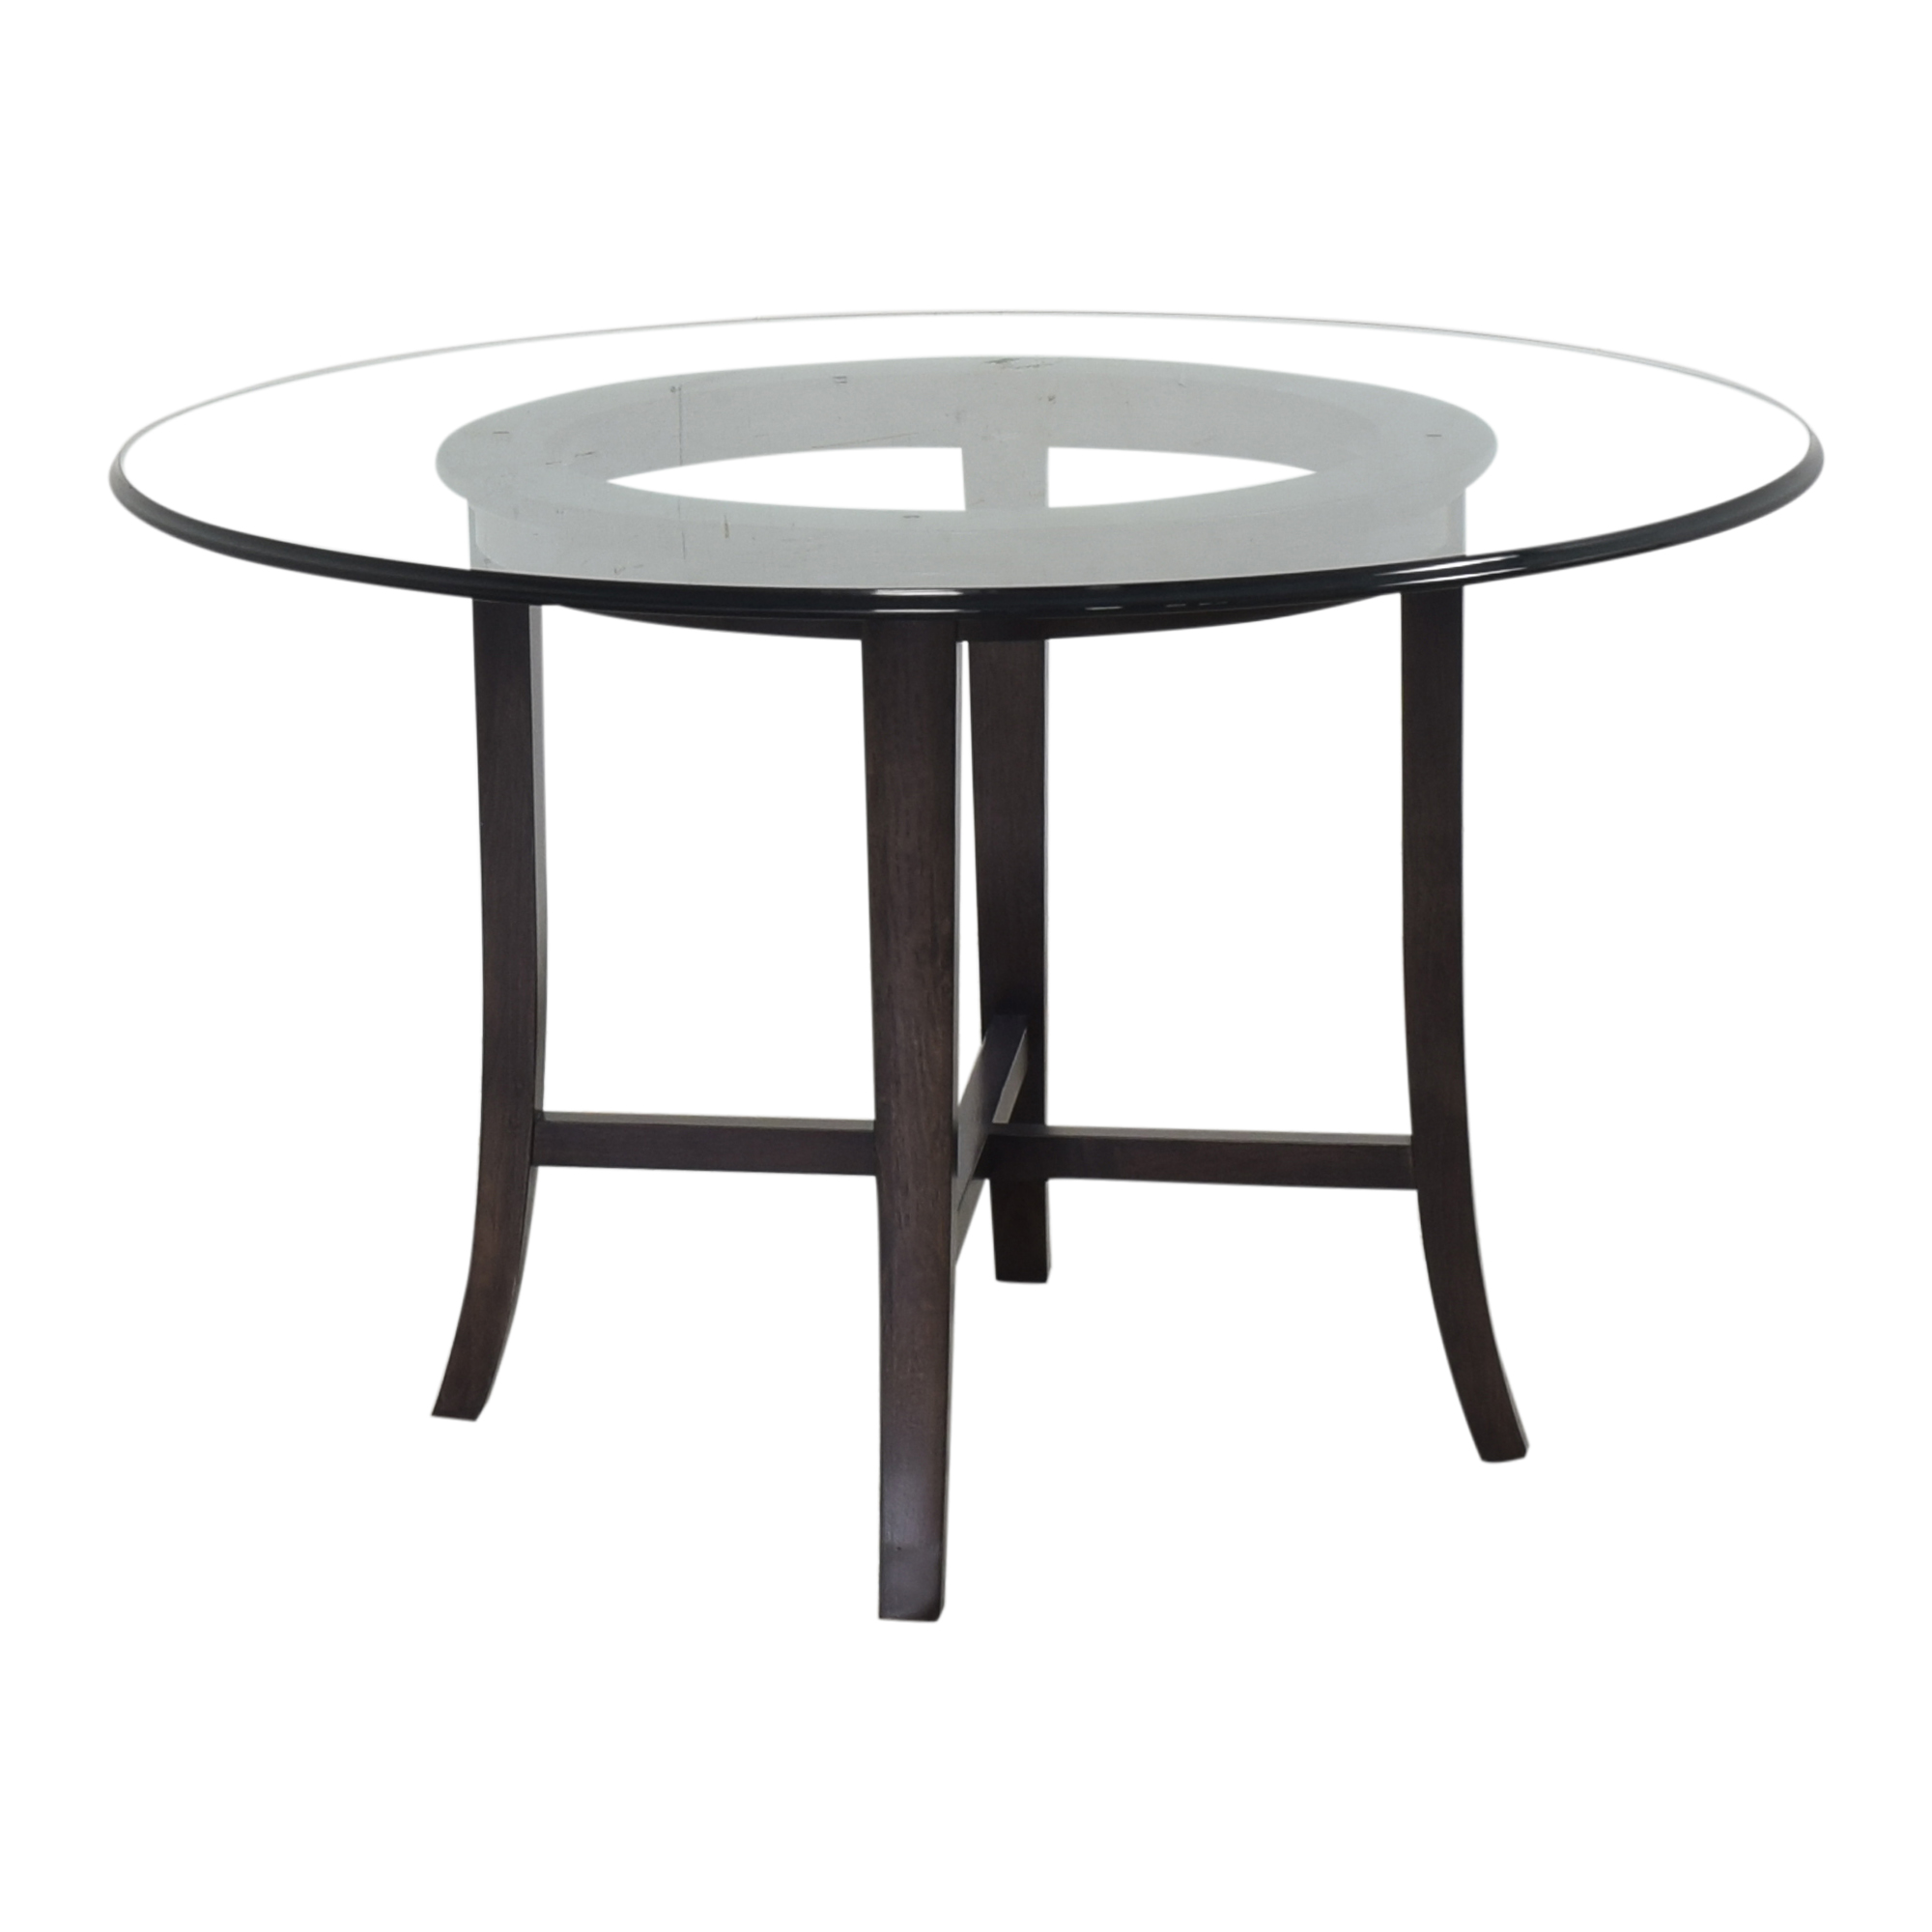 Crate & Barrel Crate & Barrel Halo Round Dining Table discount